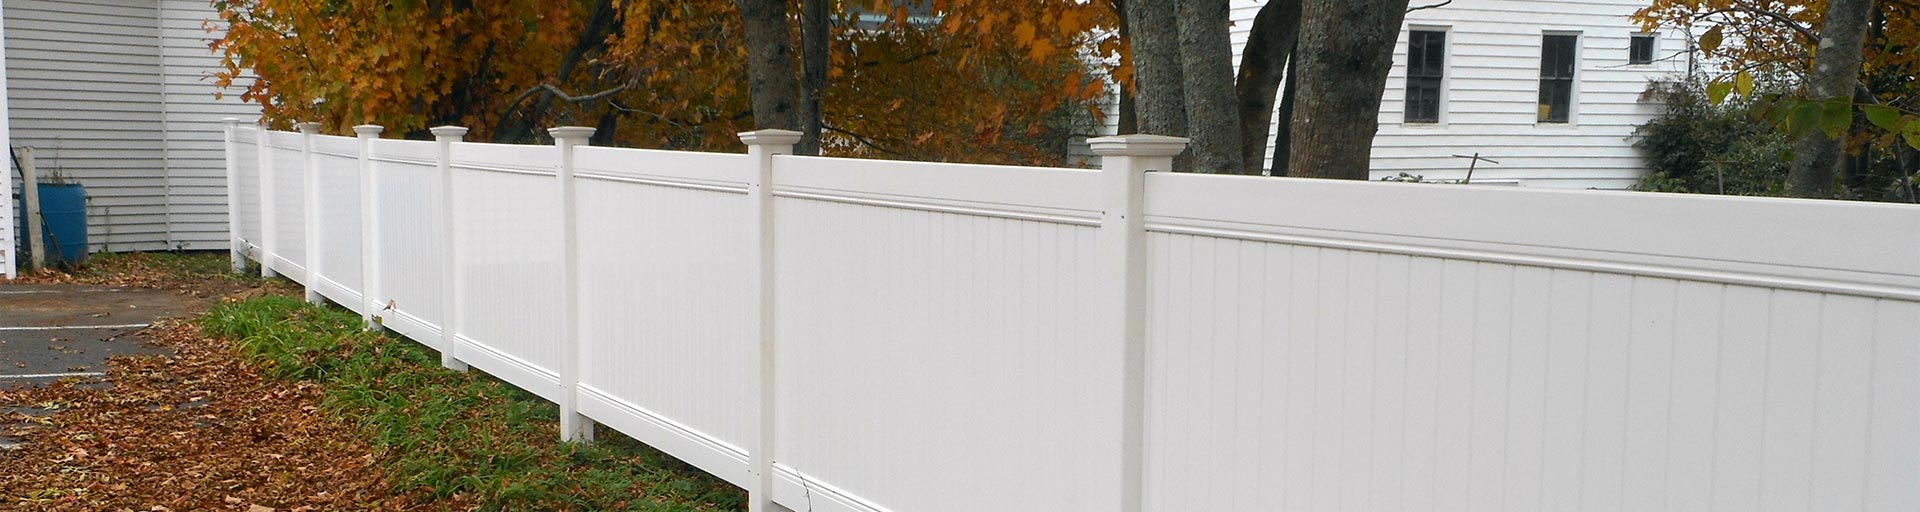 Maine Fence Company Picket Baluster Board Rail Solid Semi